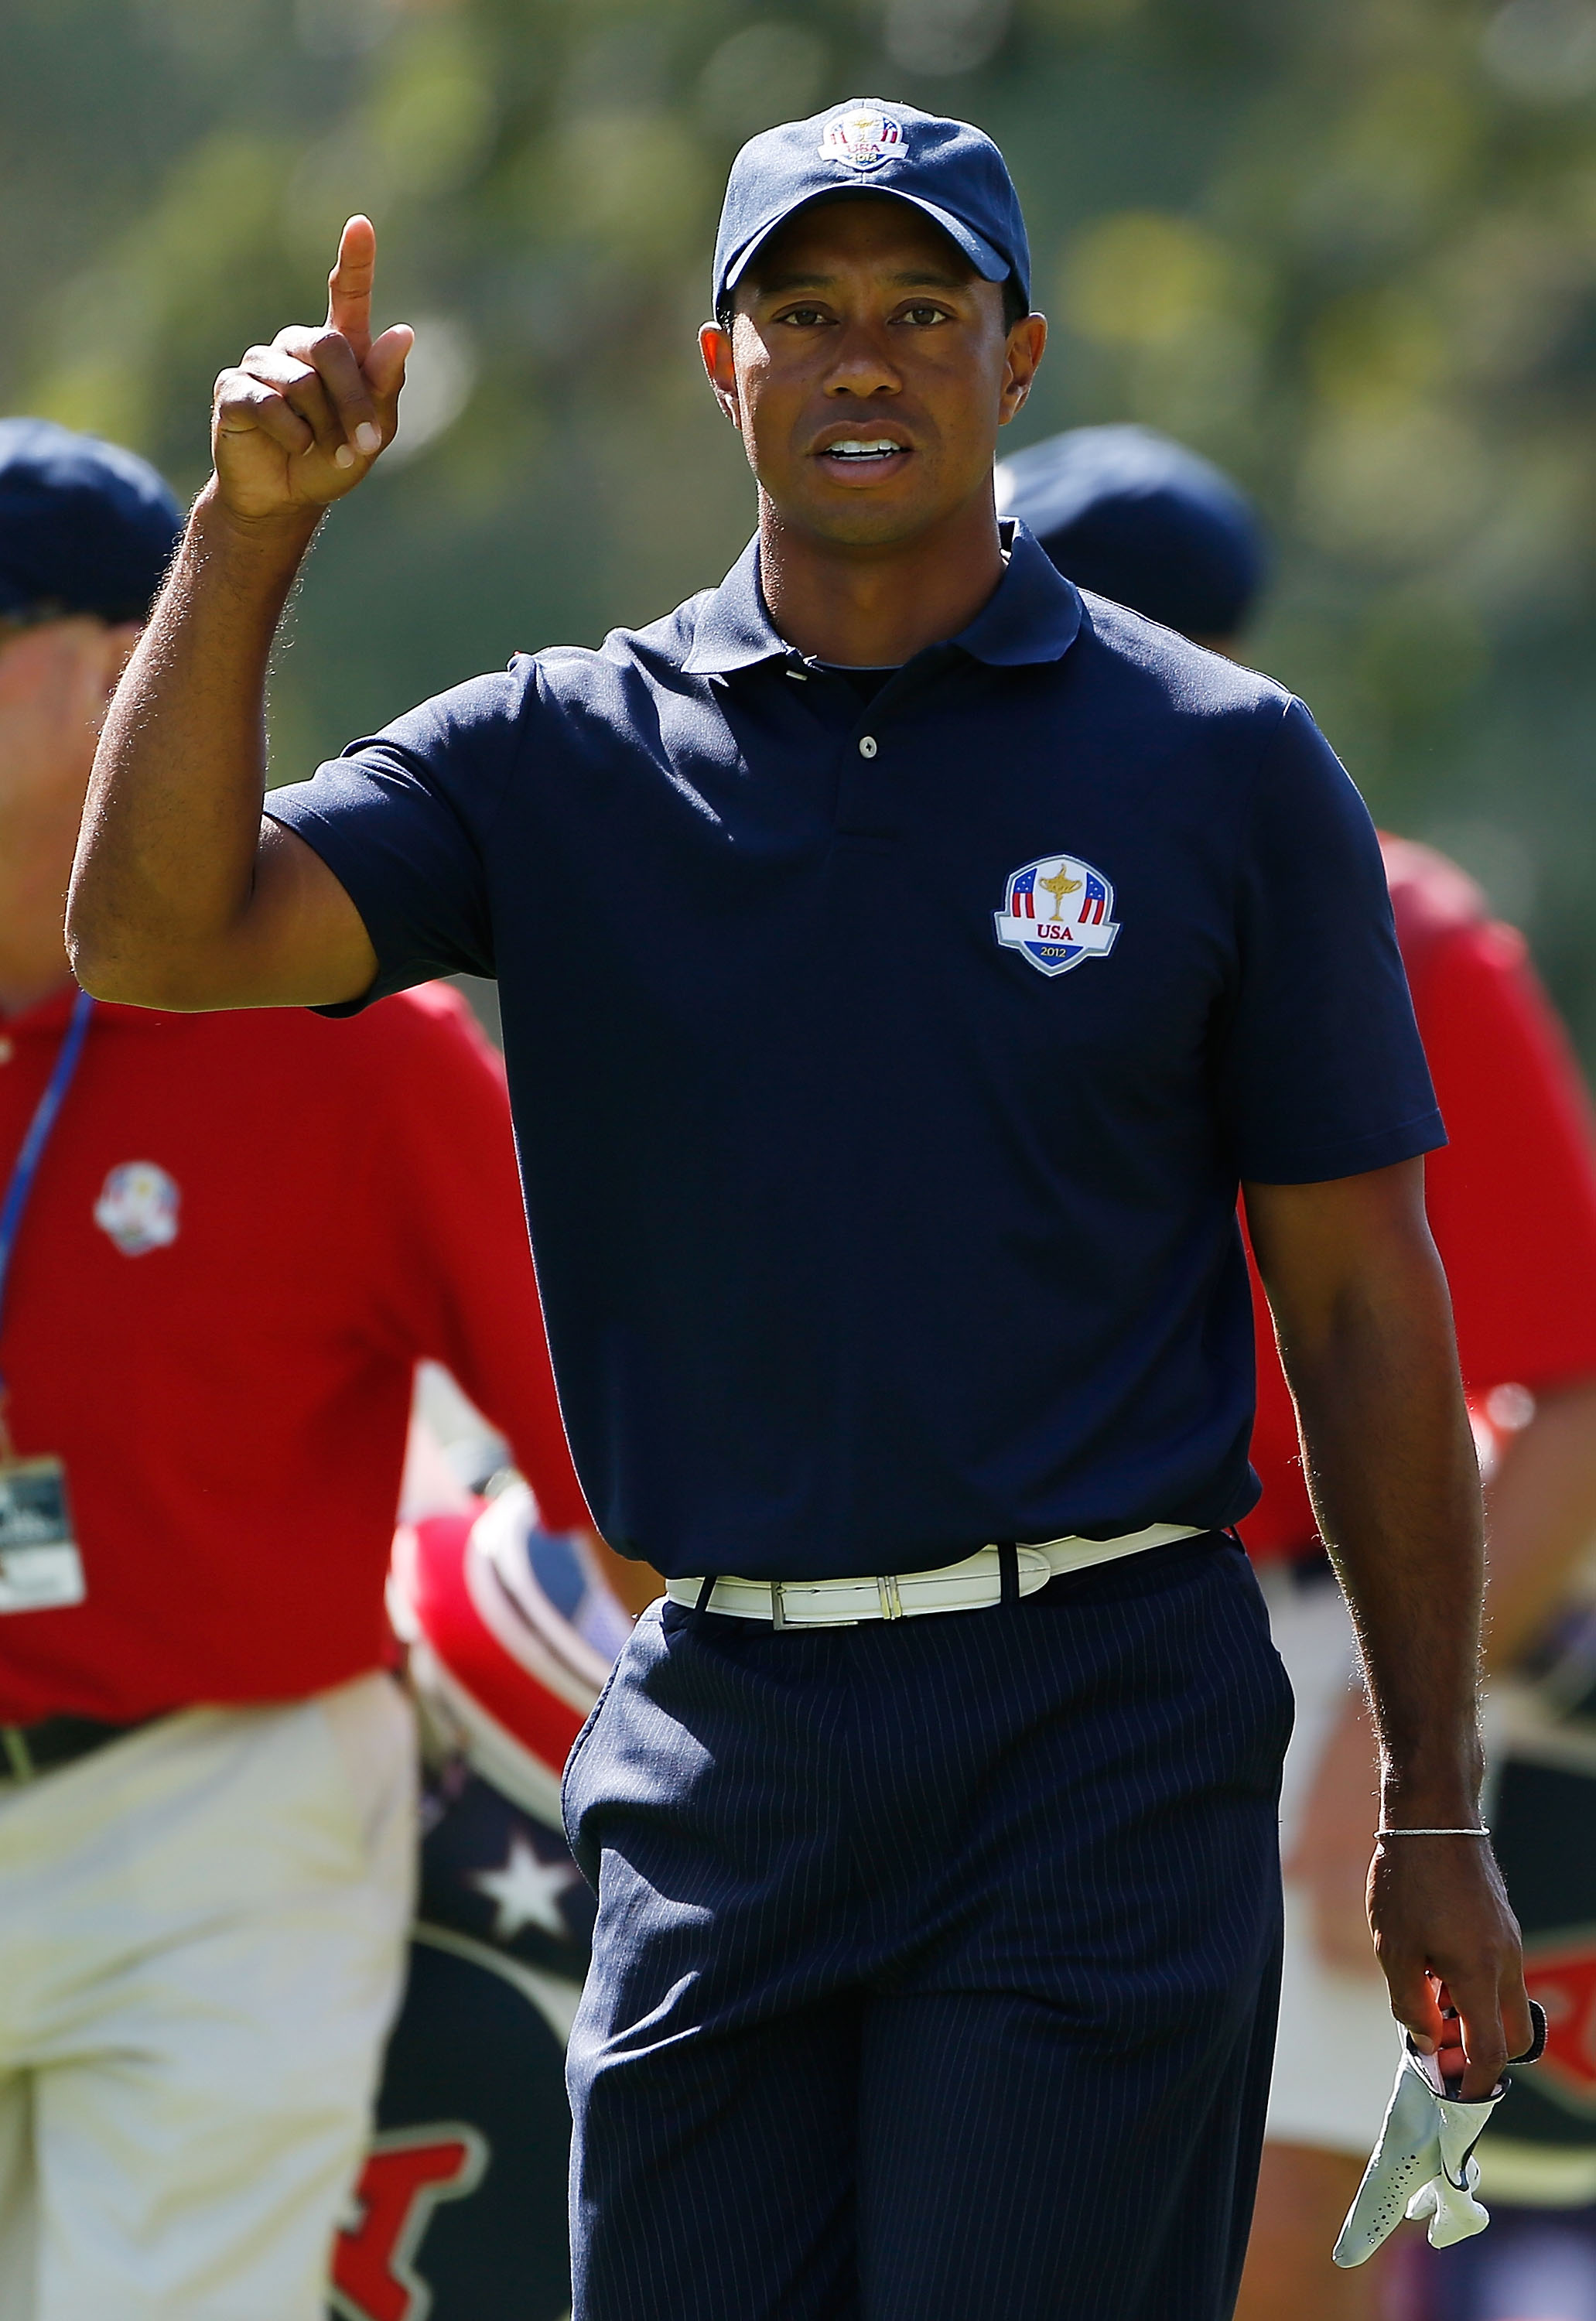 Tiger Woods has struggled in team play at the Ryder Cup over the years. (Getty Images)